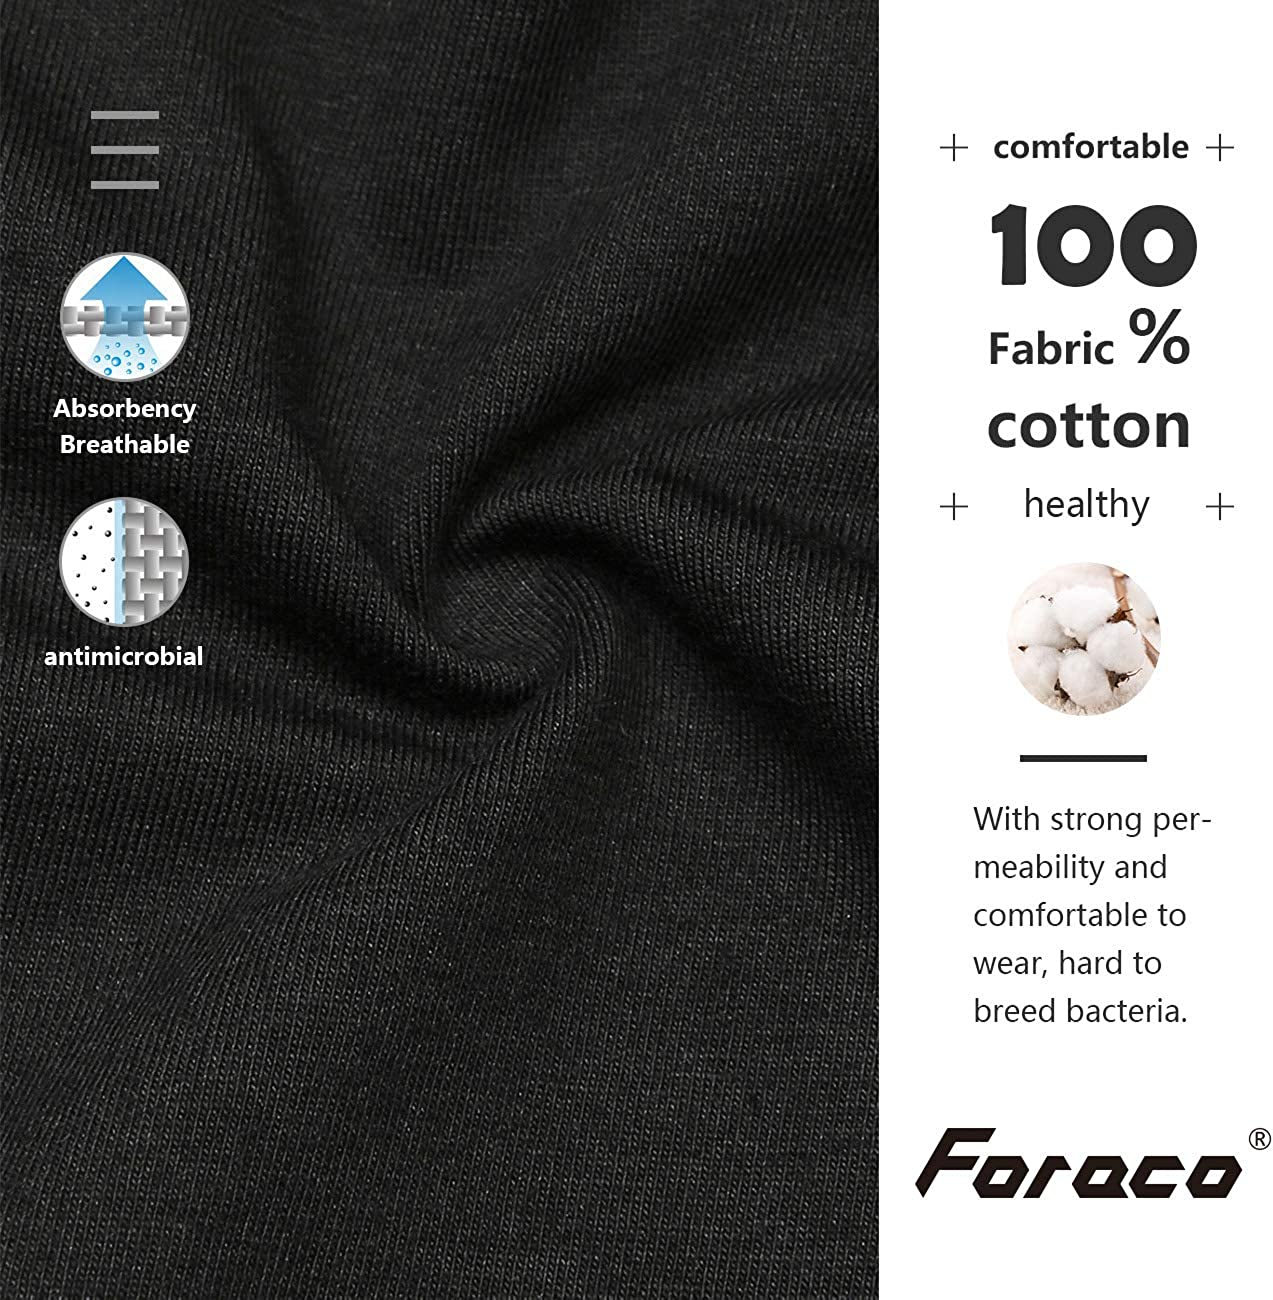 Foraco Nursing Bra Women Seamless Maternity Cotton Bralette Without Underwire for Pregnancy Breastfeeding and Sleeping